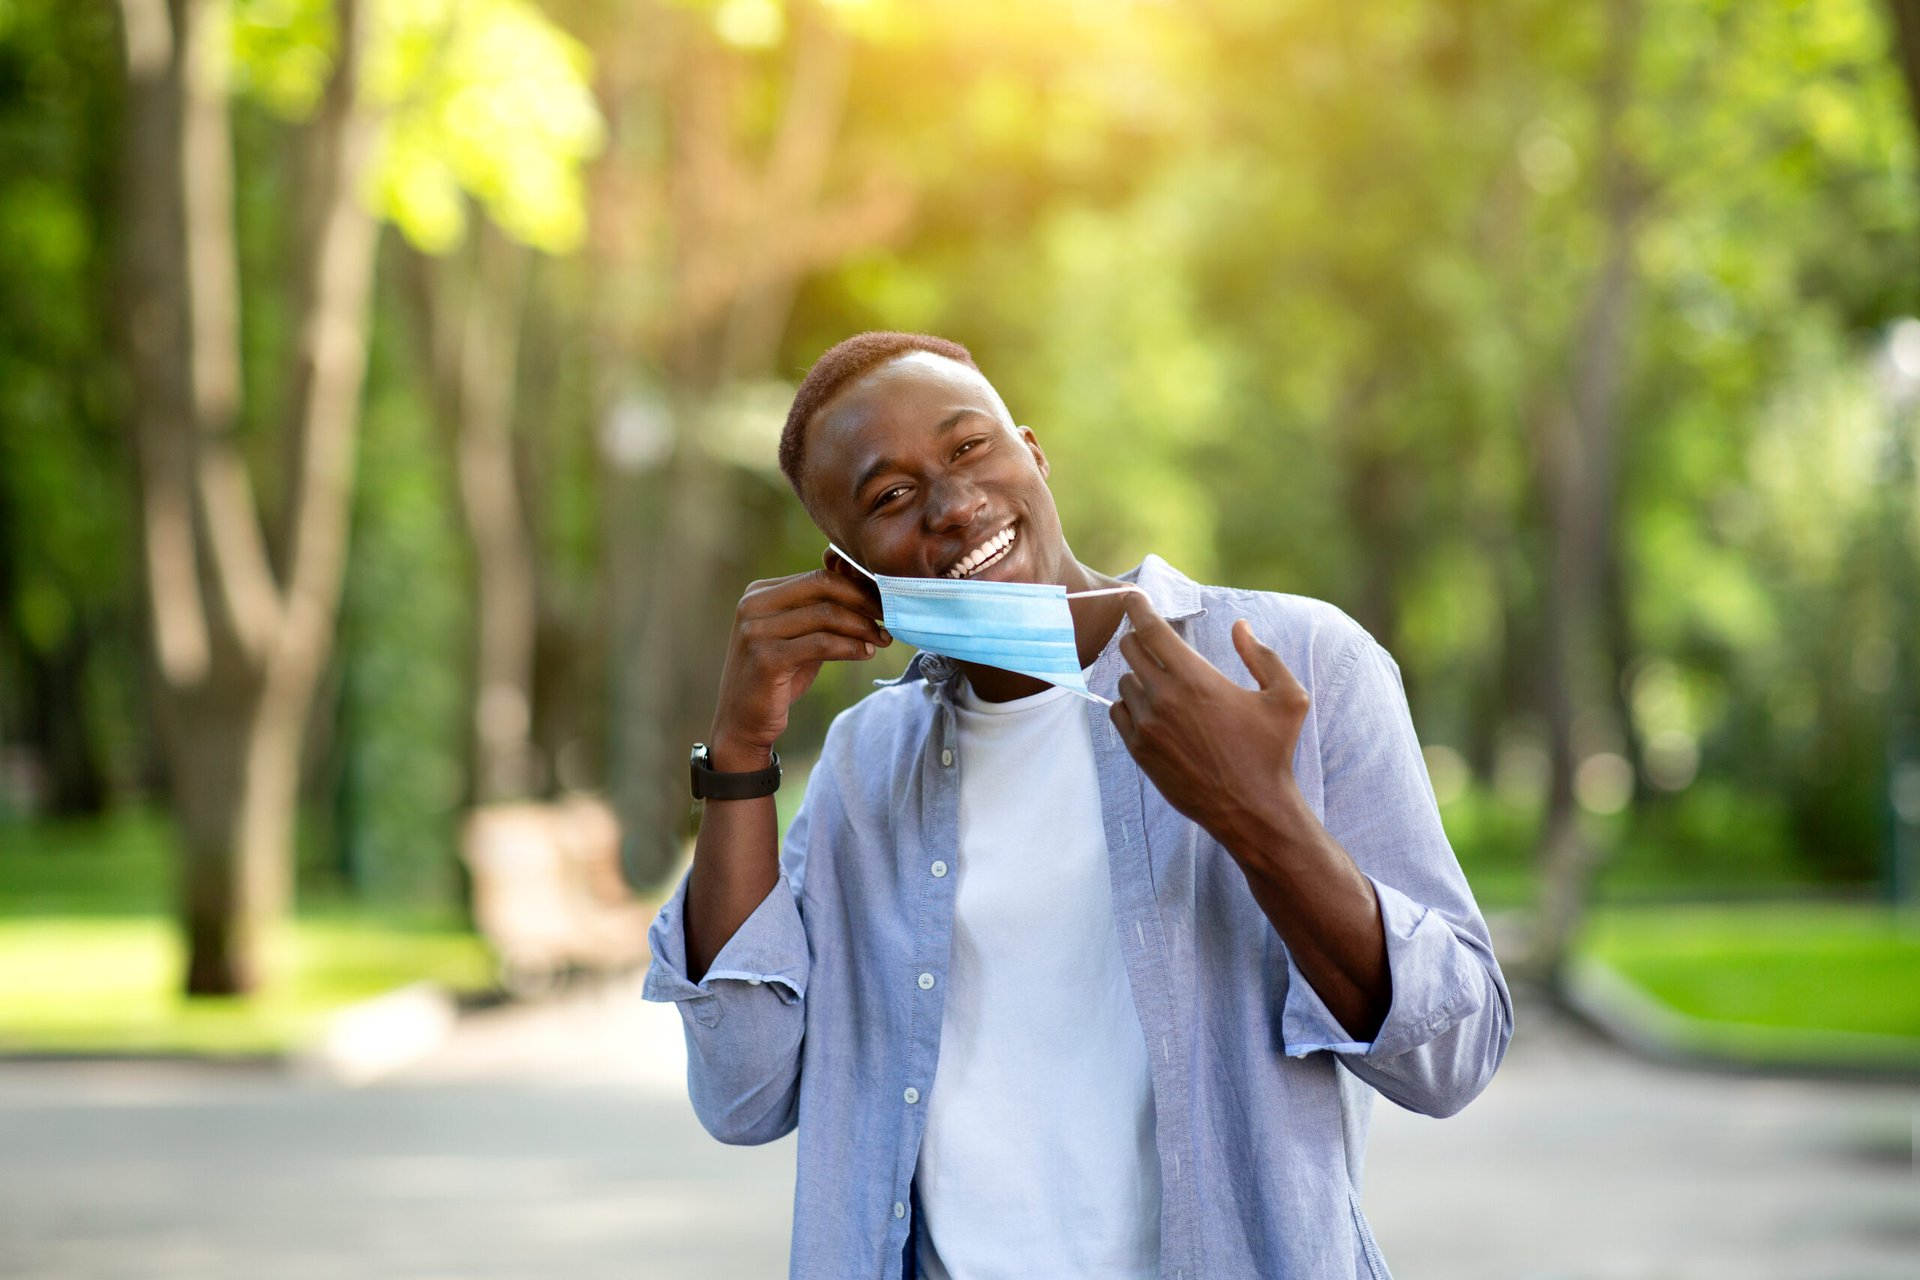 Man removing his mask outdoors